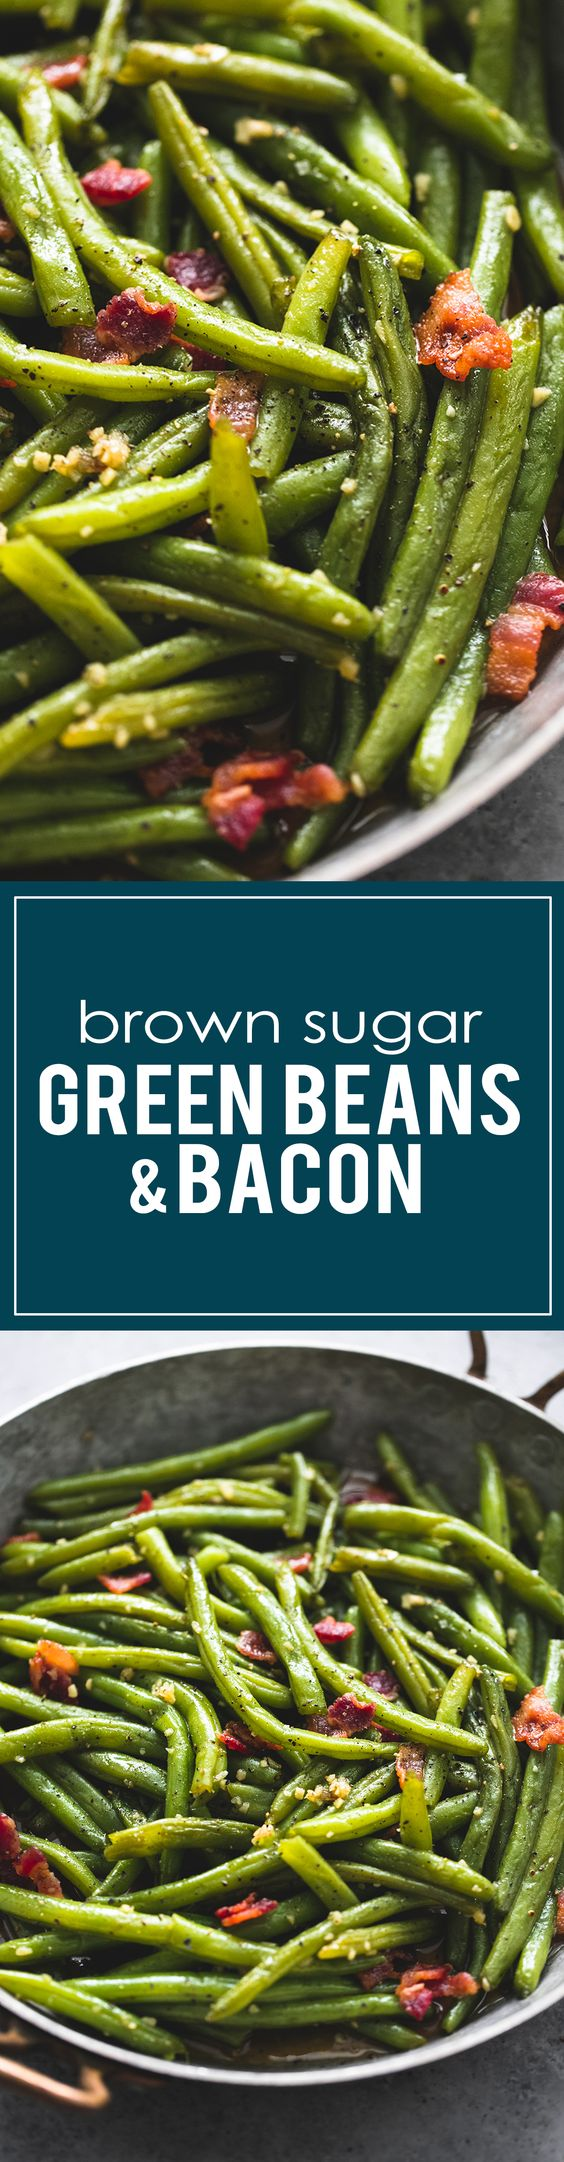 The BEST Brown Sugar Green Beans with Bacon Vegetable Side Dish Recipe via Creme de la Crumb